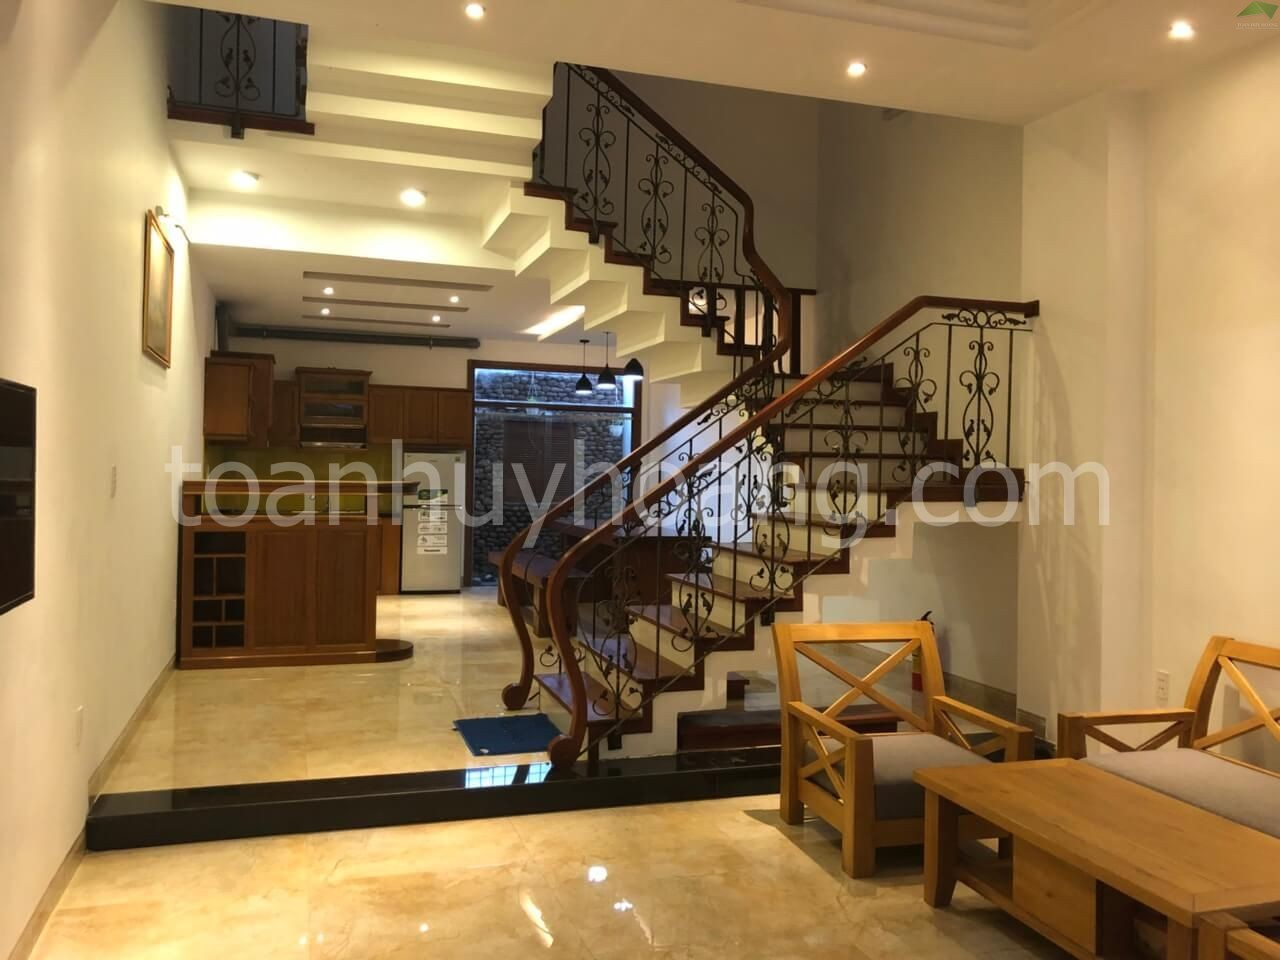 da nang house for rent in My Khe beach